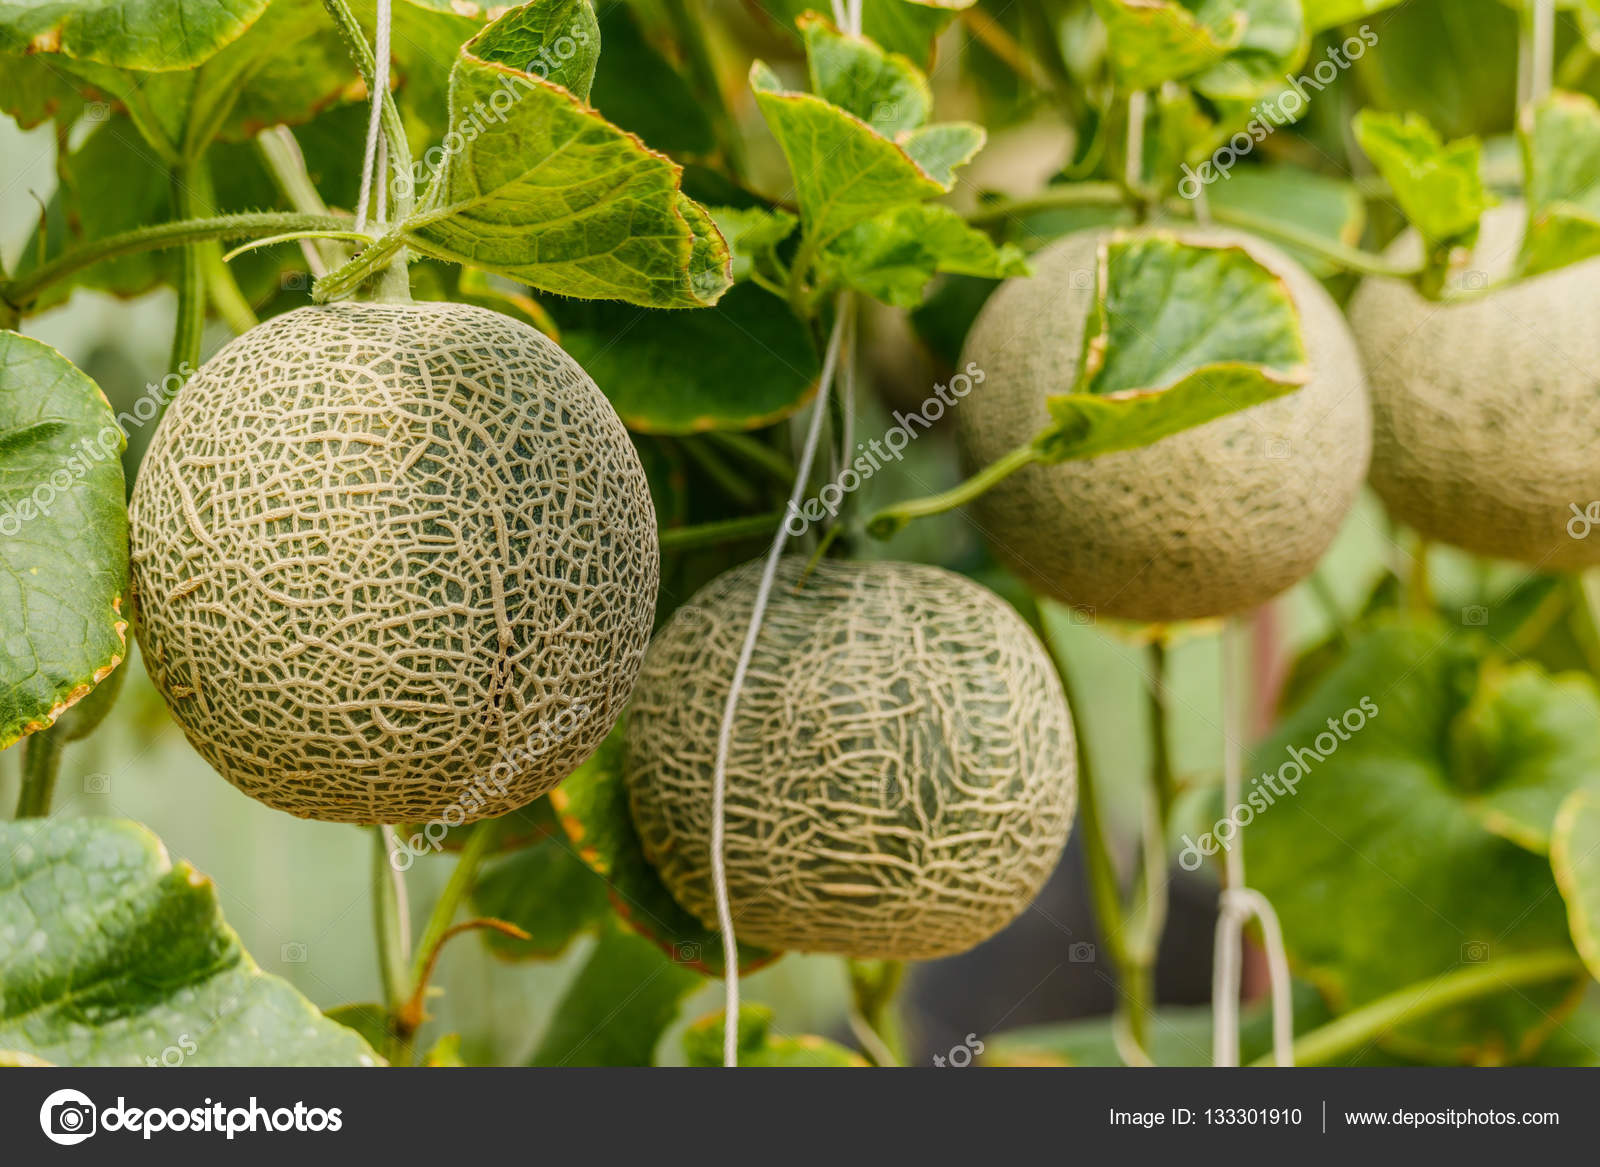 Cantaloupe Fresh Melon On Tree Selective Focus Stock Photo C Sanpom 133301910 Our mission is to help you eat and cook the healthiest way for optimal health. https depositphotos com 133301910 stock photo cantaloupe fresh melon on tree html